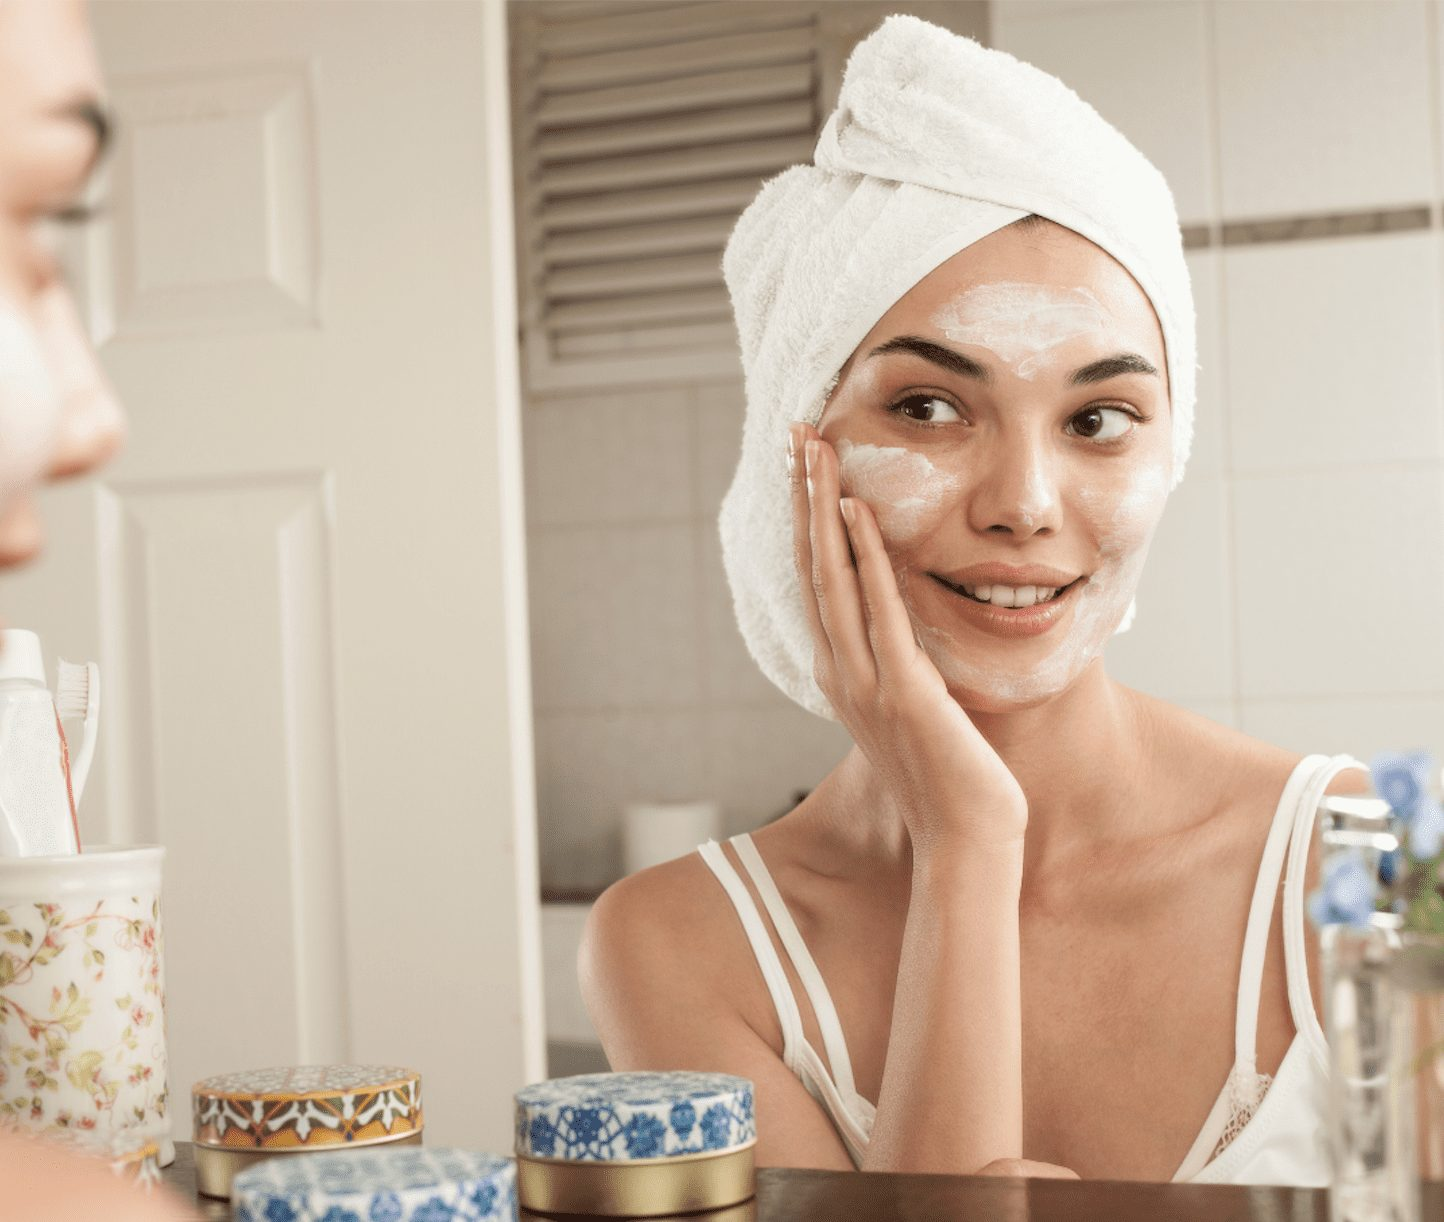 5 reasons why skincare is important